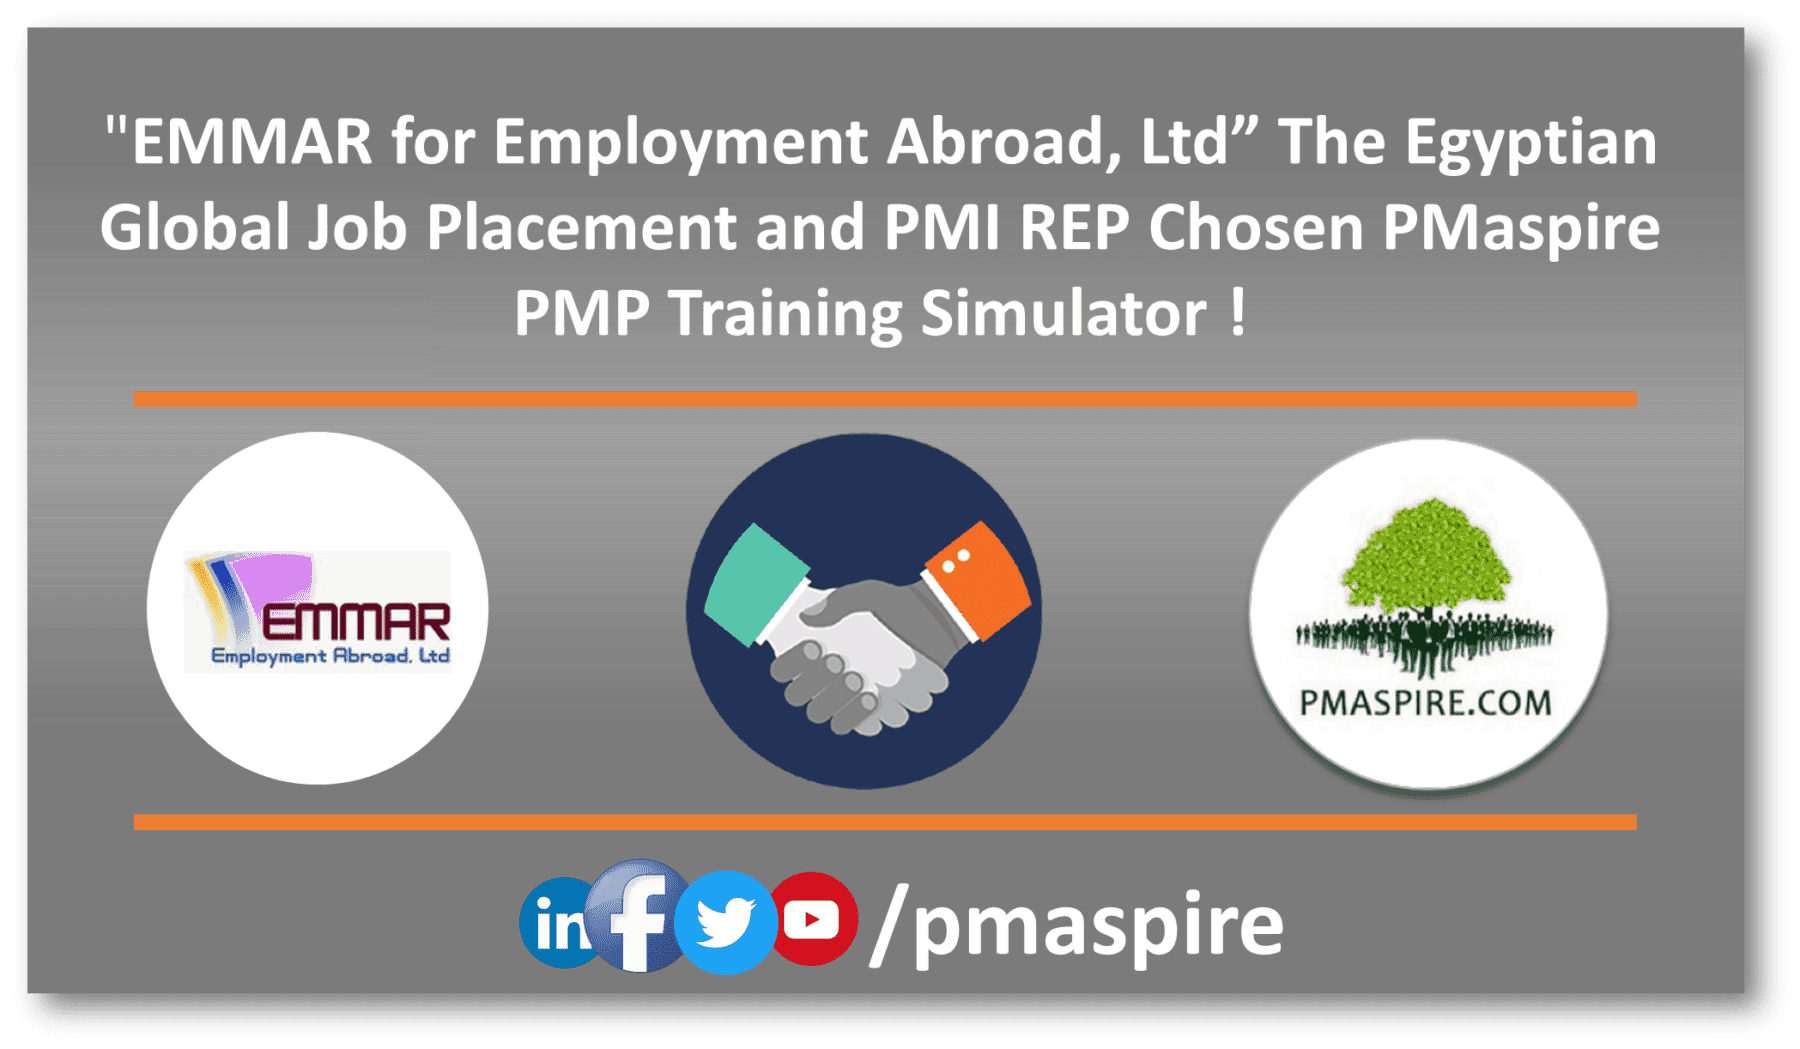 EMMAR for Employment, Egypt Signed up for PMaspire Training Simulator